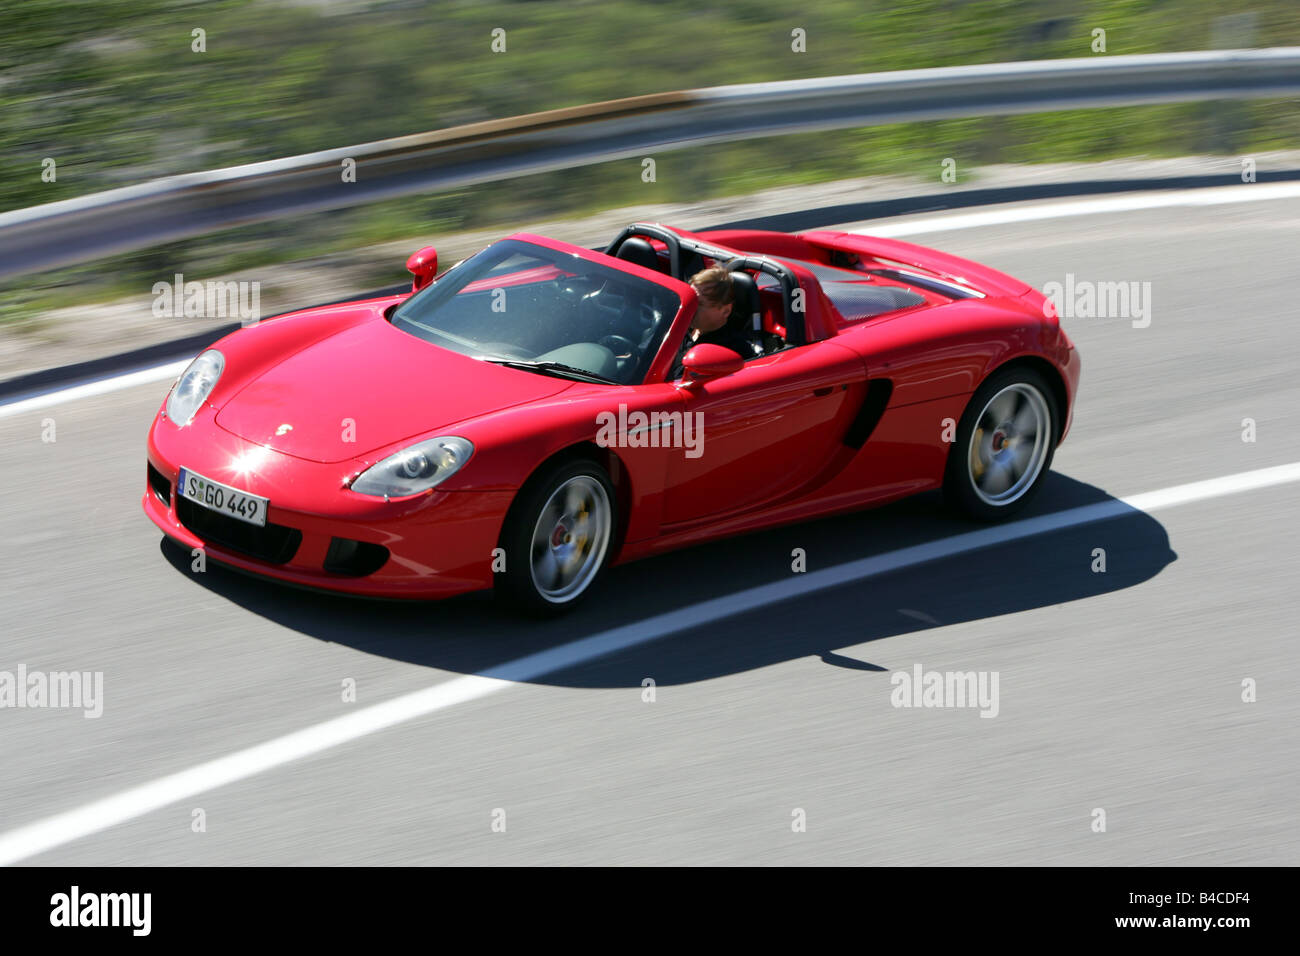 Car Porsche Carrera Gt Model Year 2005 Red Convertible Open